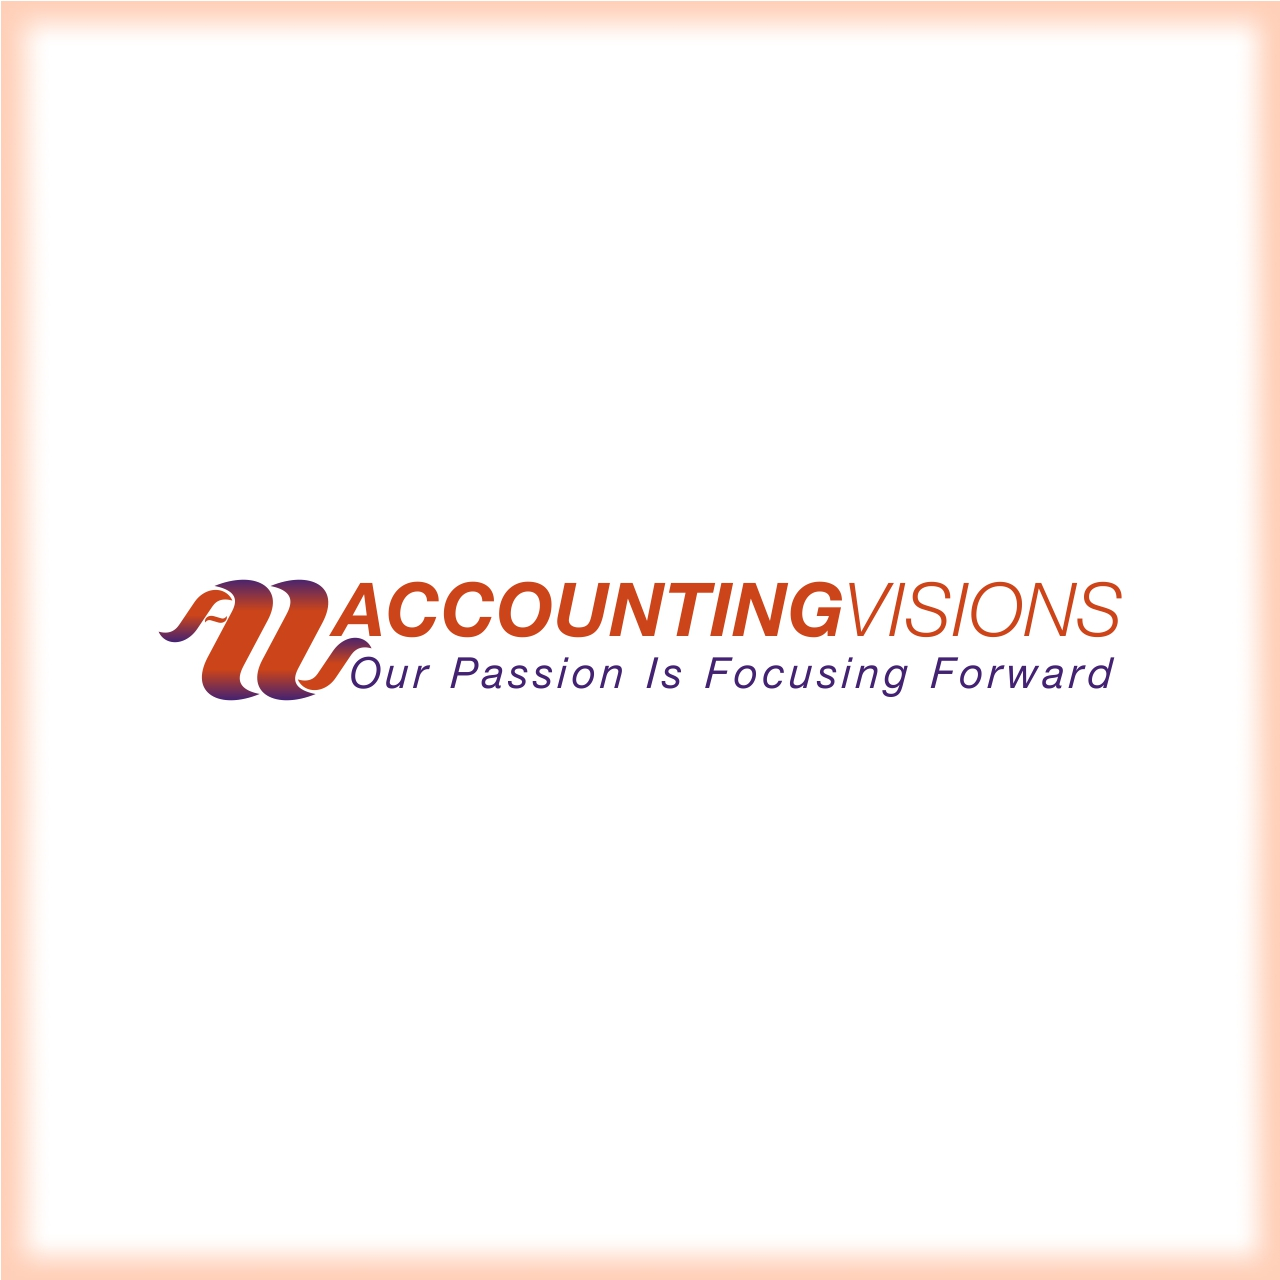 Logo Design by martinz - Entry No. 39 in the Logo Design Contest Accounting Visions.